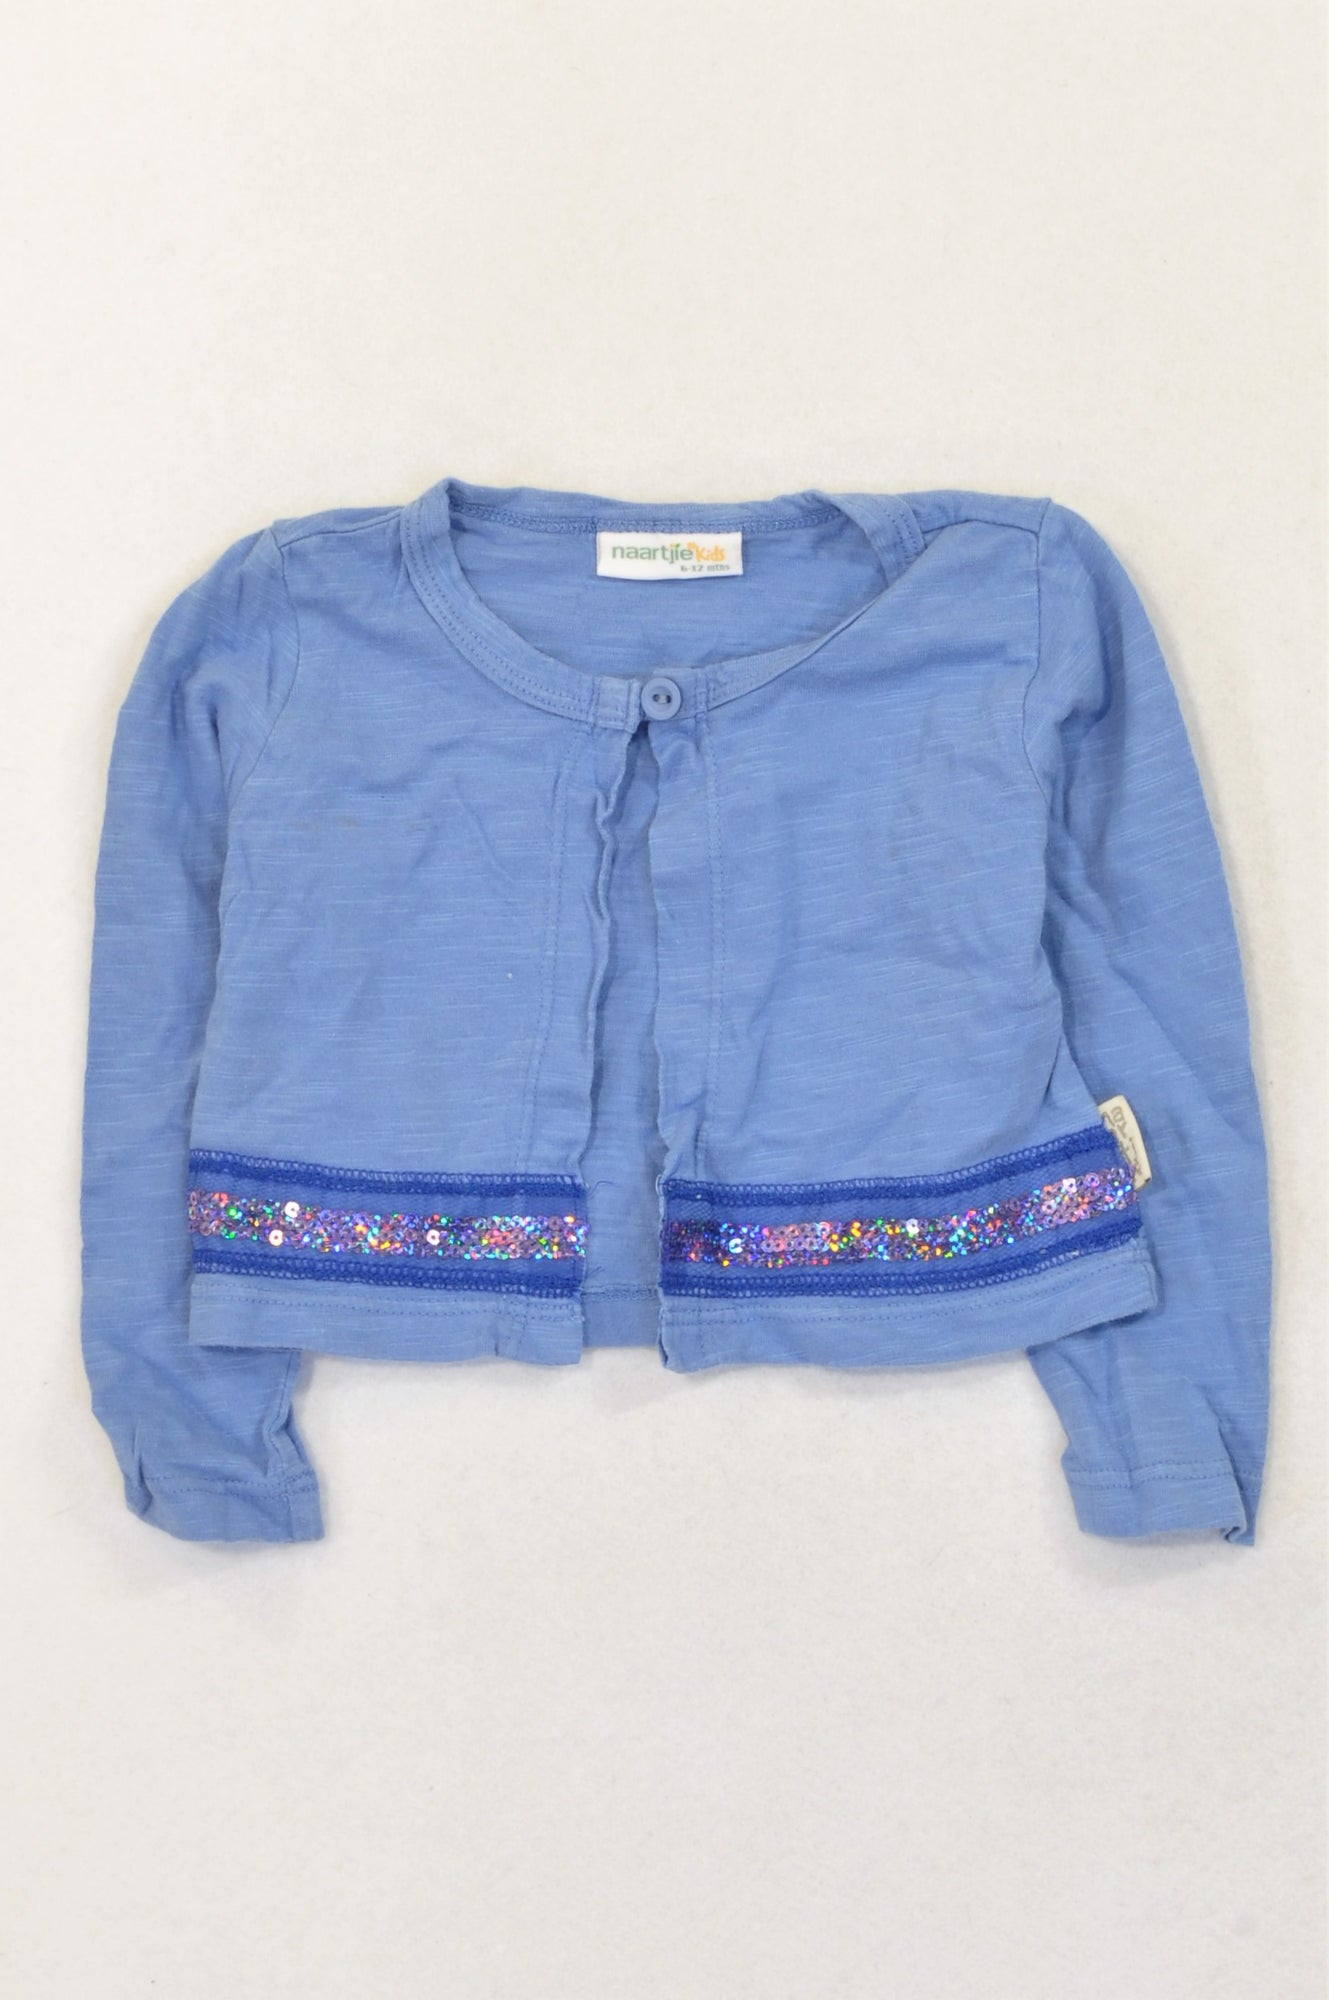 Naartjie Dusty Blue Sequin Band Button Lightweight Cardigan Girls 6-12 months